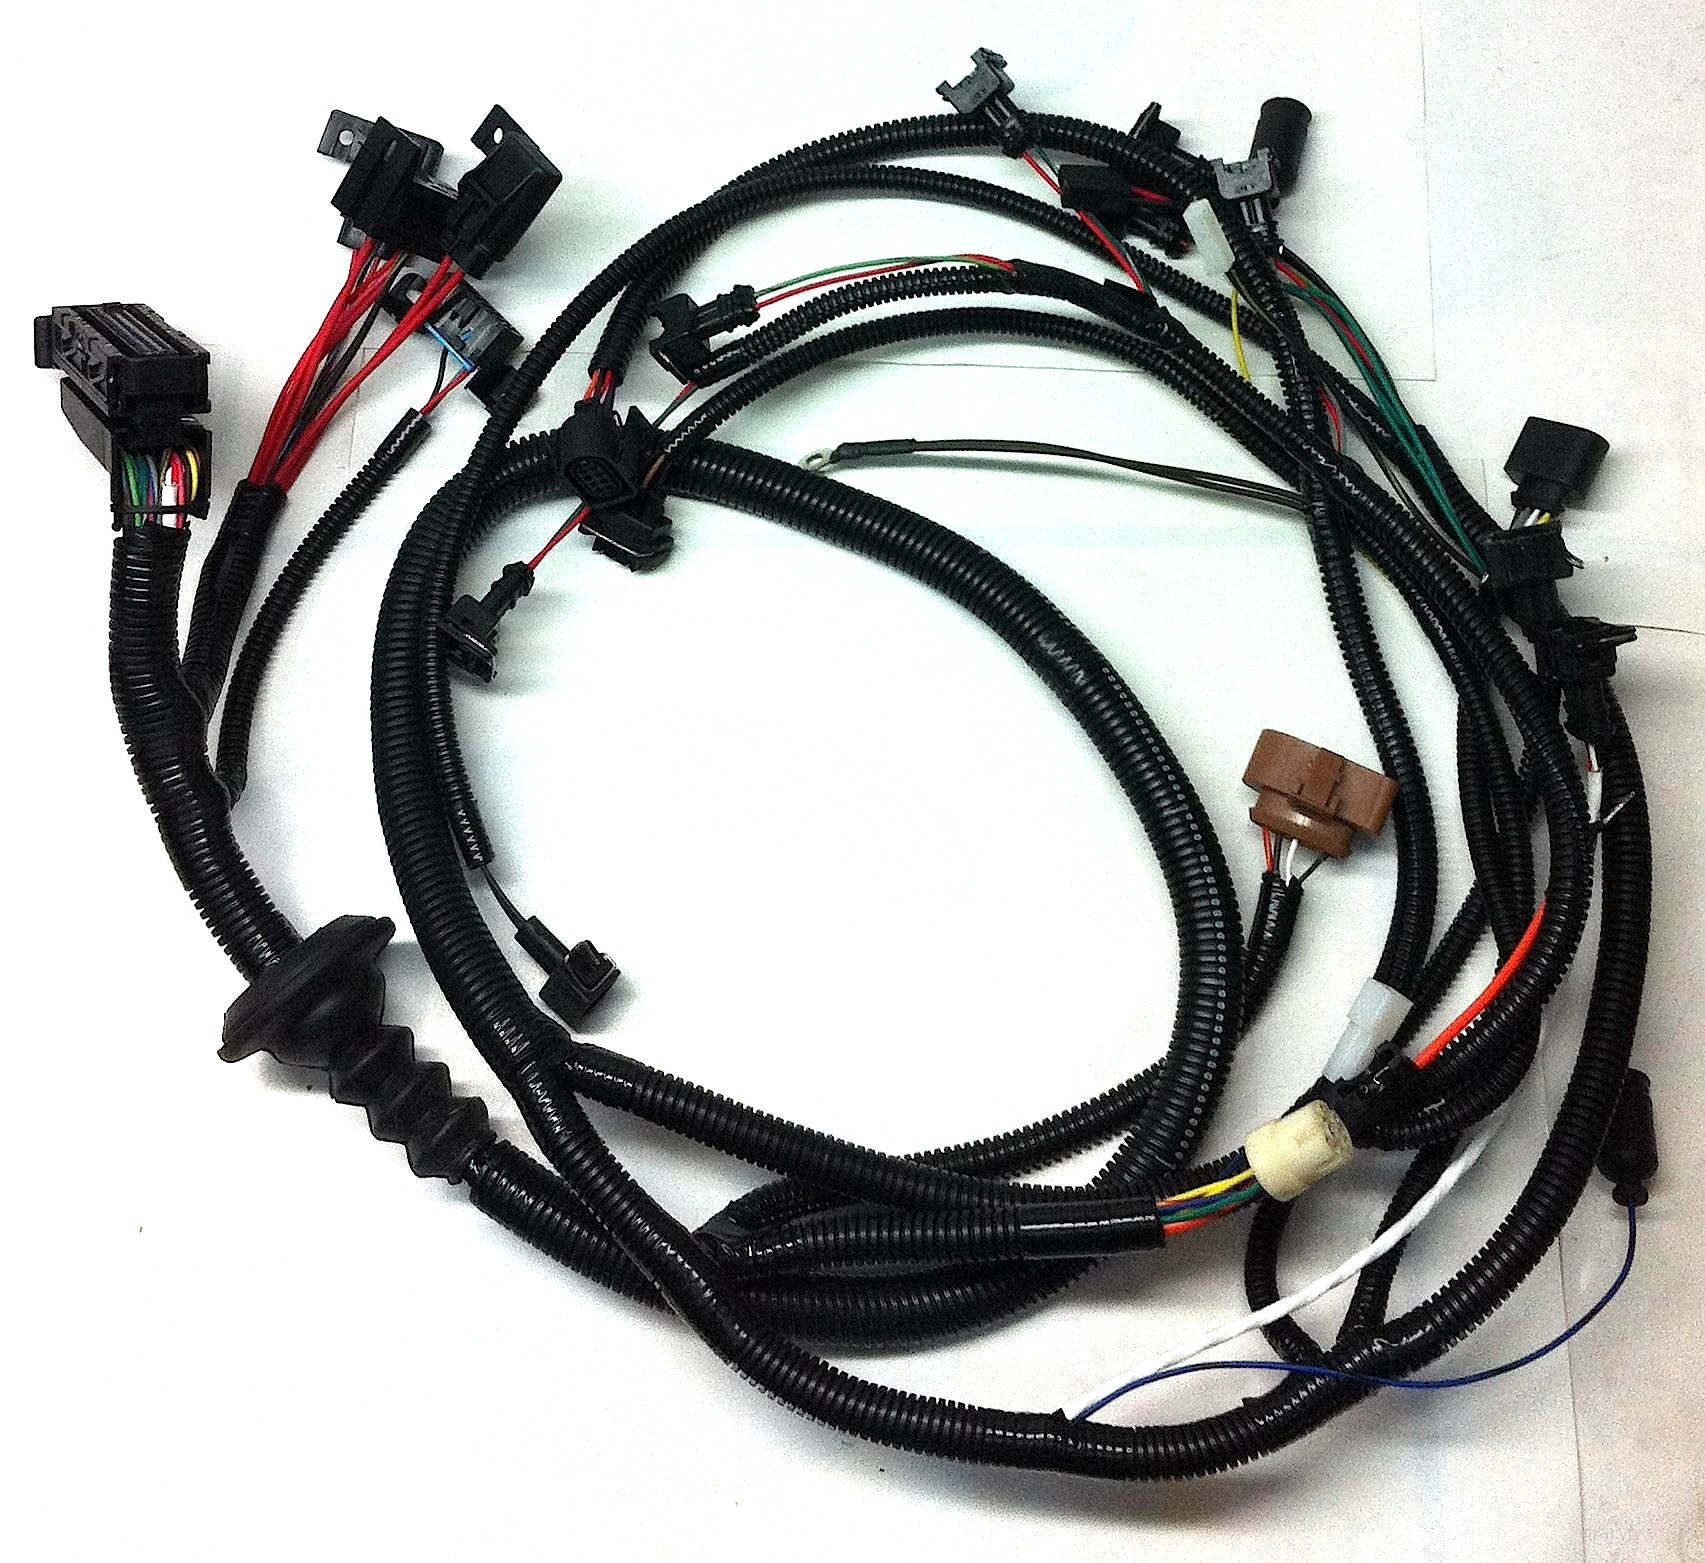 Wiring_Harness_2LR 2lr tiico conversion wiring harness foreign auto & supply, inc wiring harness diagram at mifinder.co